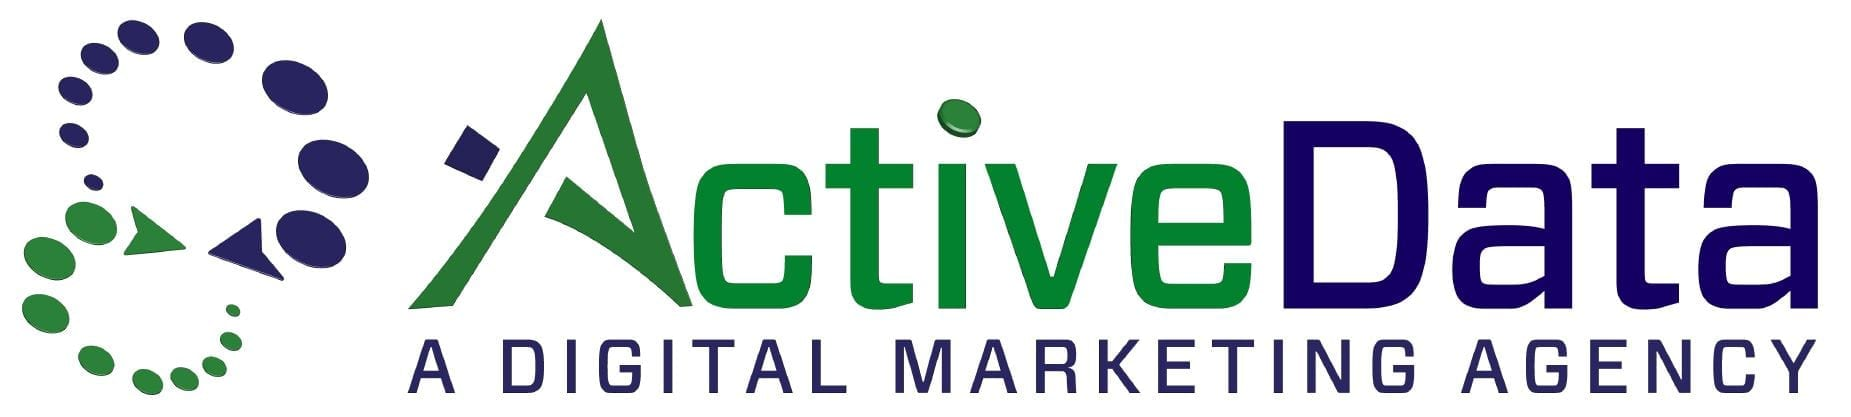 ActiveData | A Digital Marketing Agency